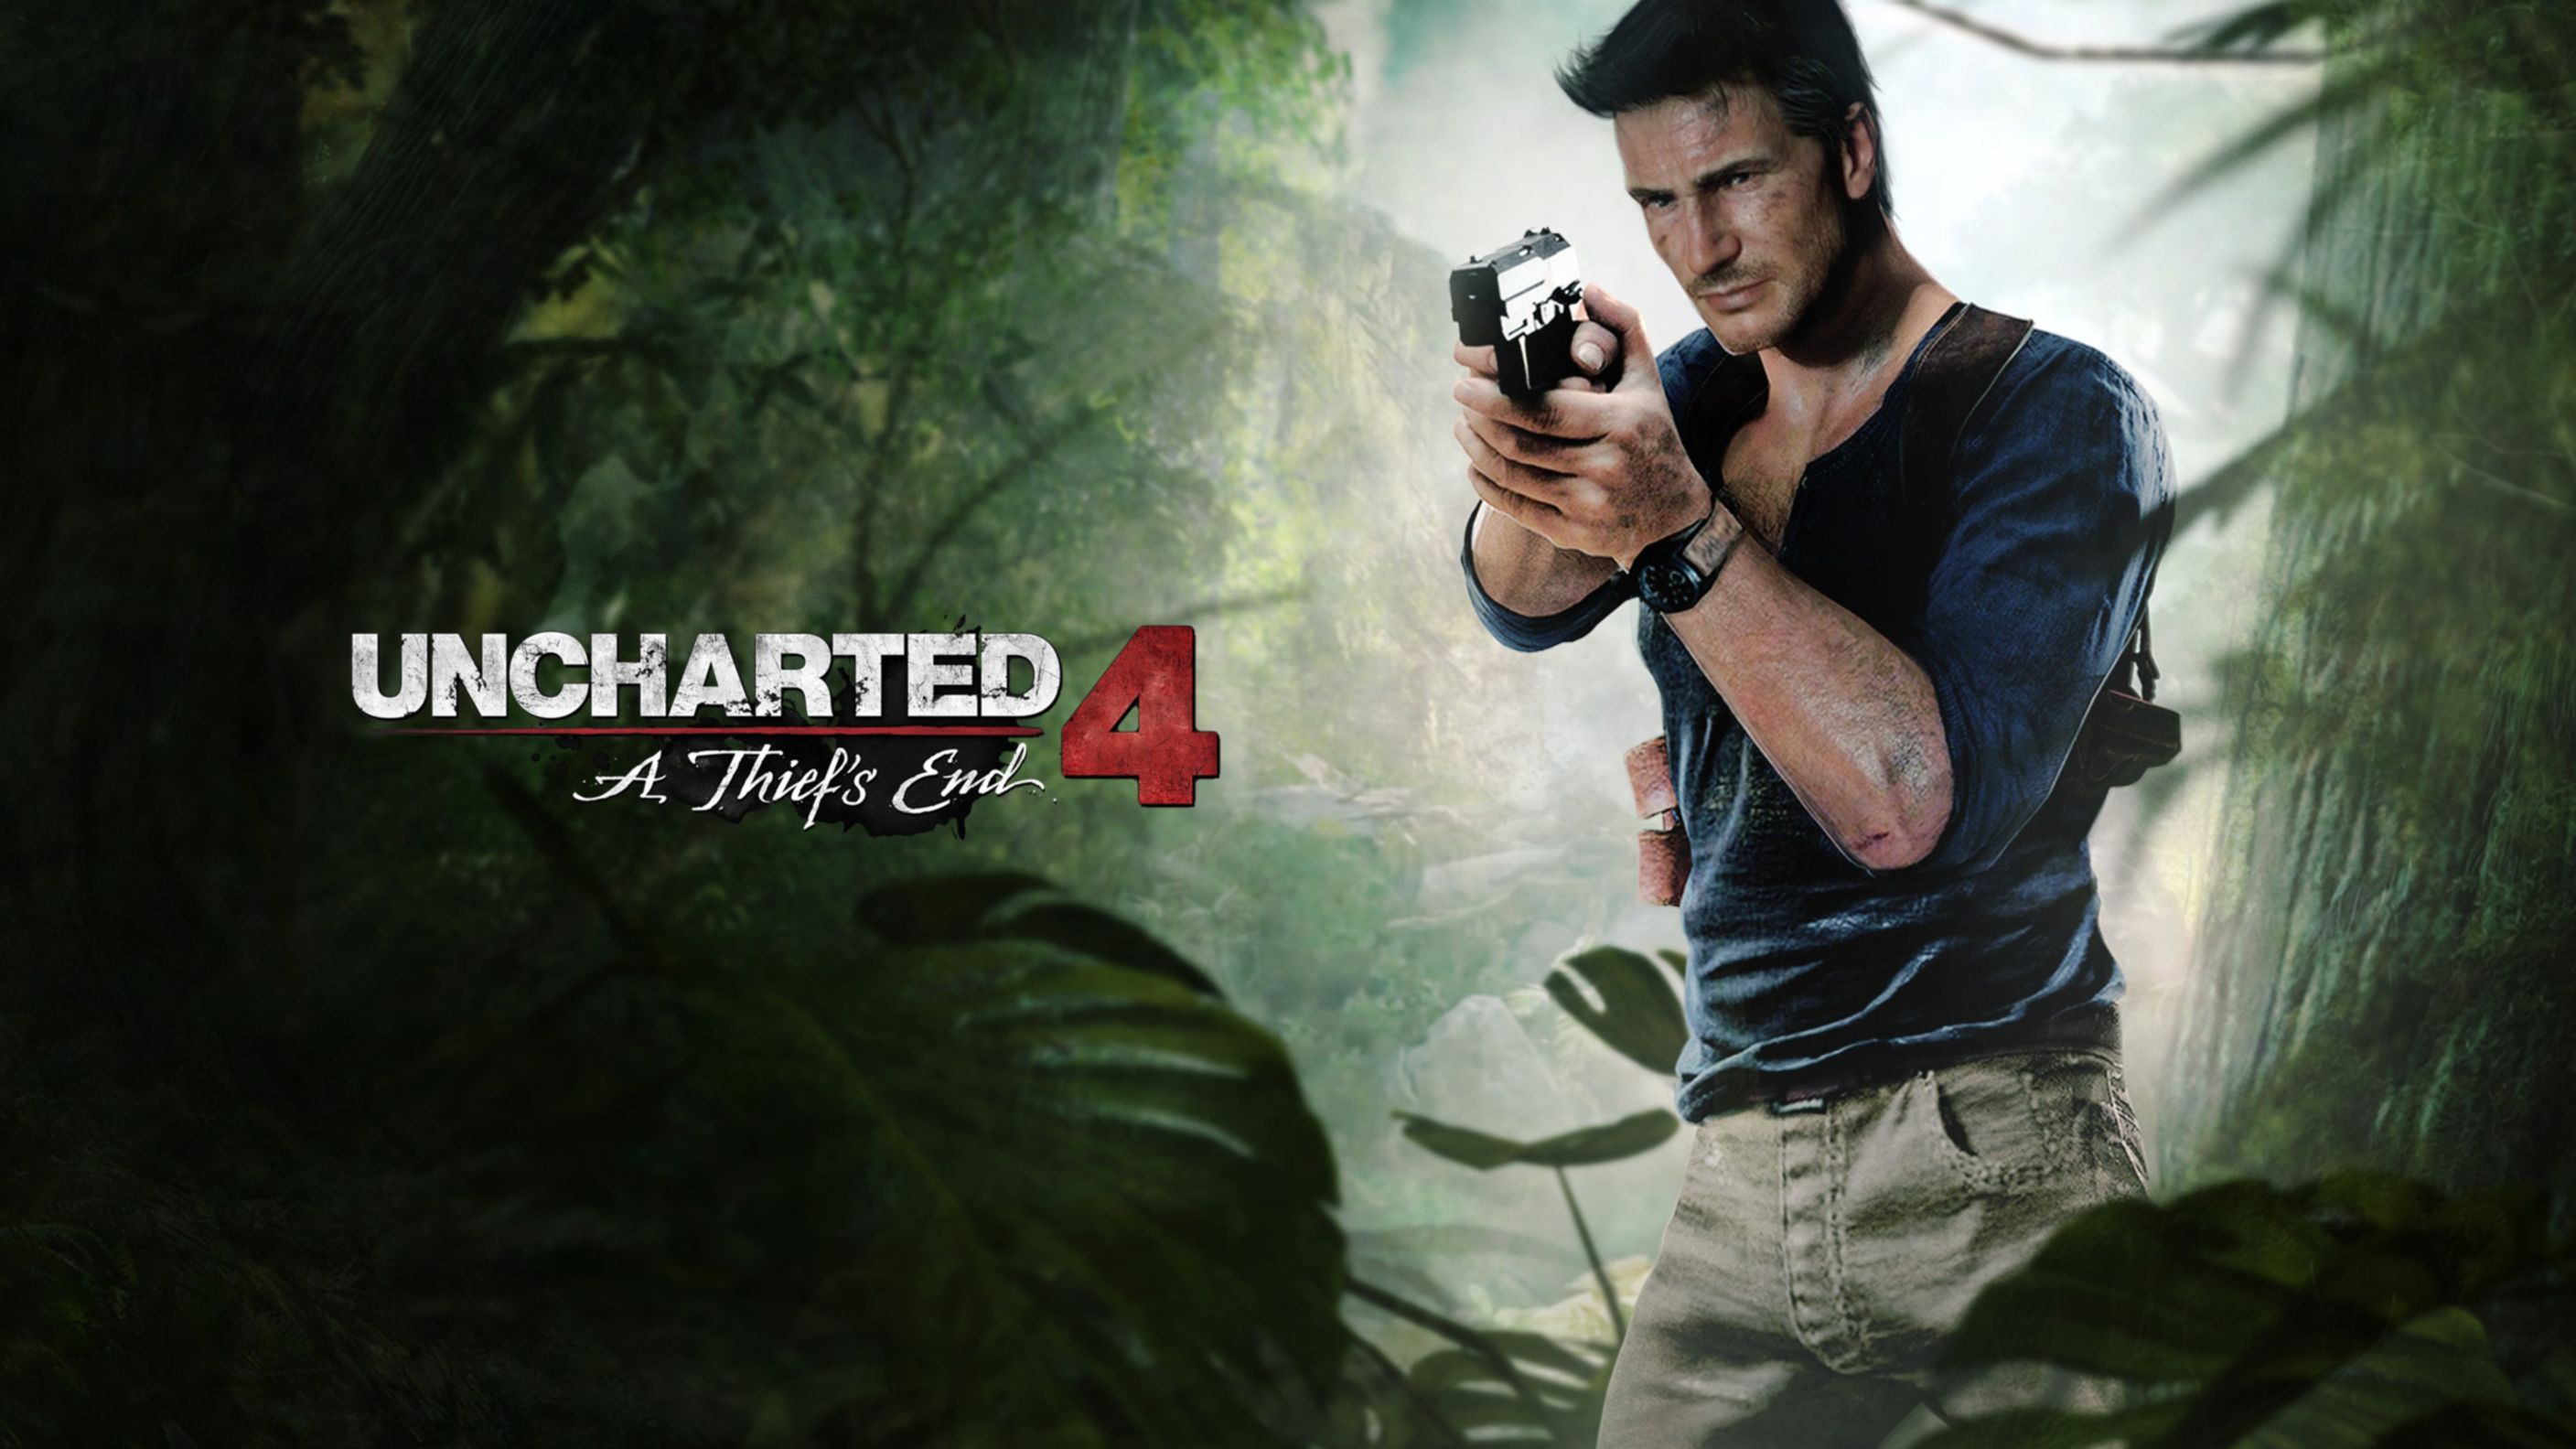 Download free HD Uncharted 4 A Thiefs End 2016 HD Wallpaper, image